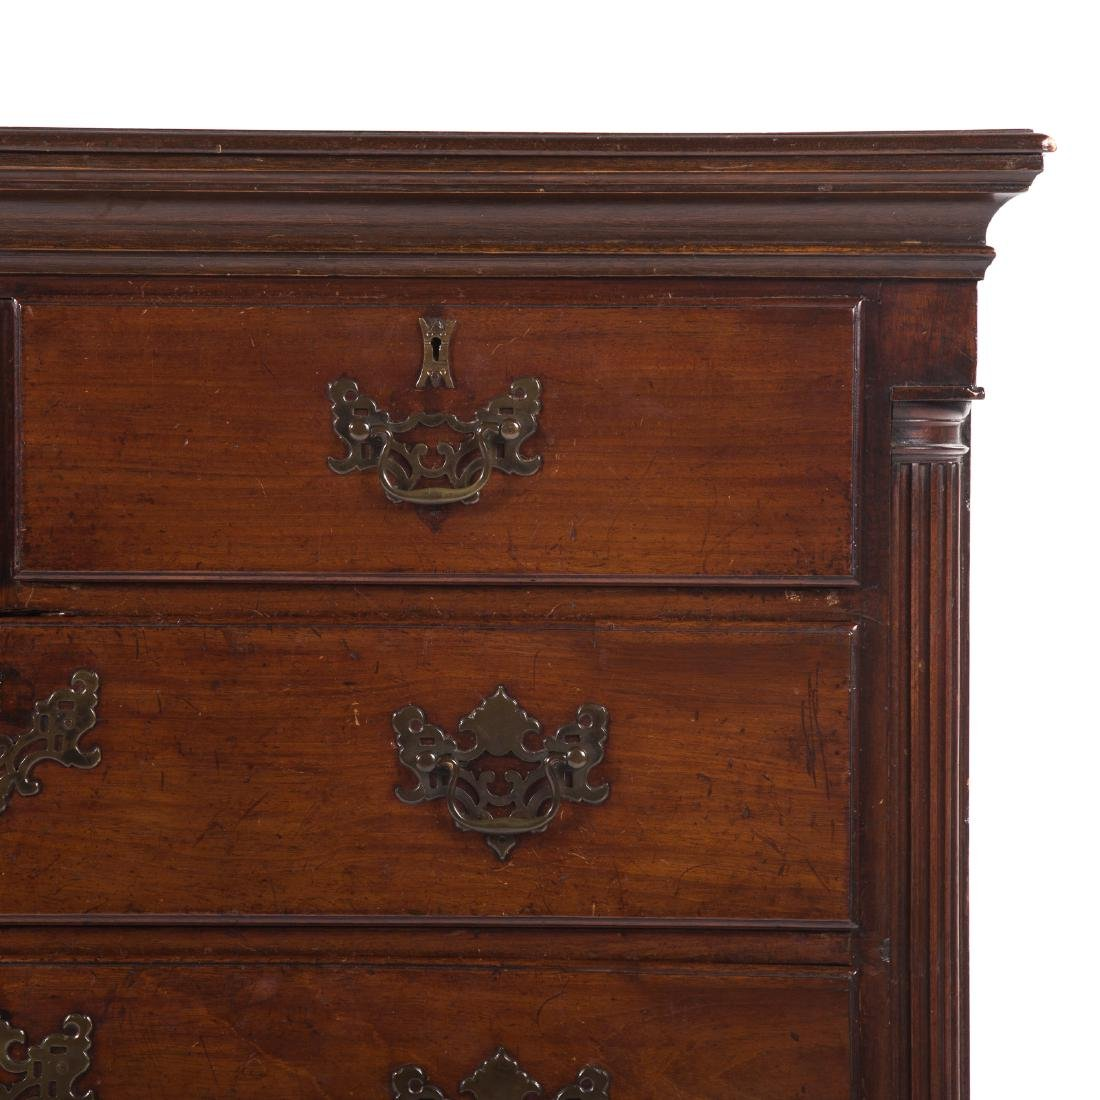 Chippendale mahogany chest of drawers - 2